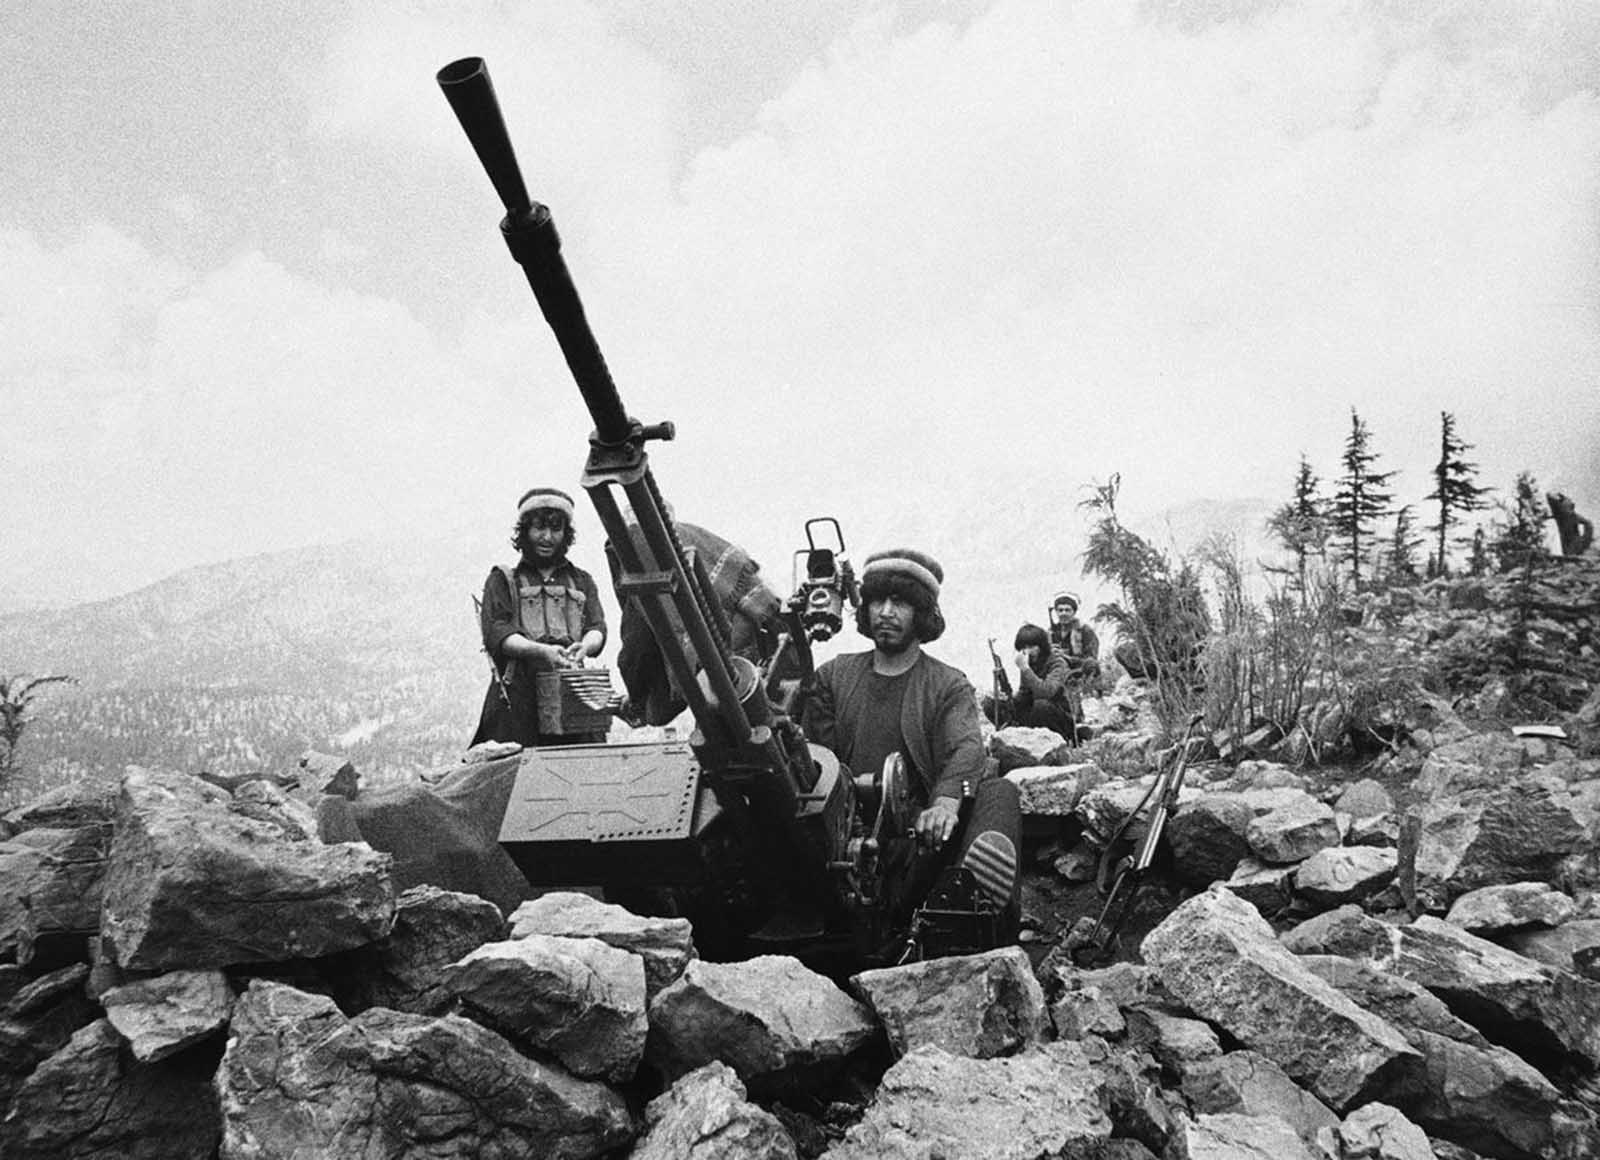 Muslim anti-aircraft gunners in eastern Afghanistan's Paktia Province on July 20, 1986.